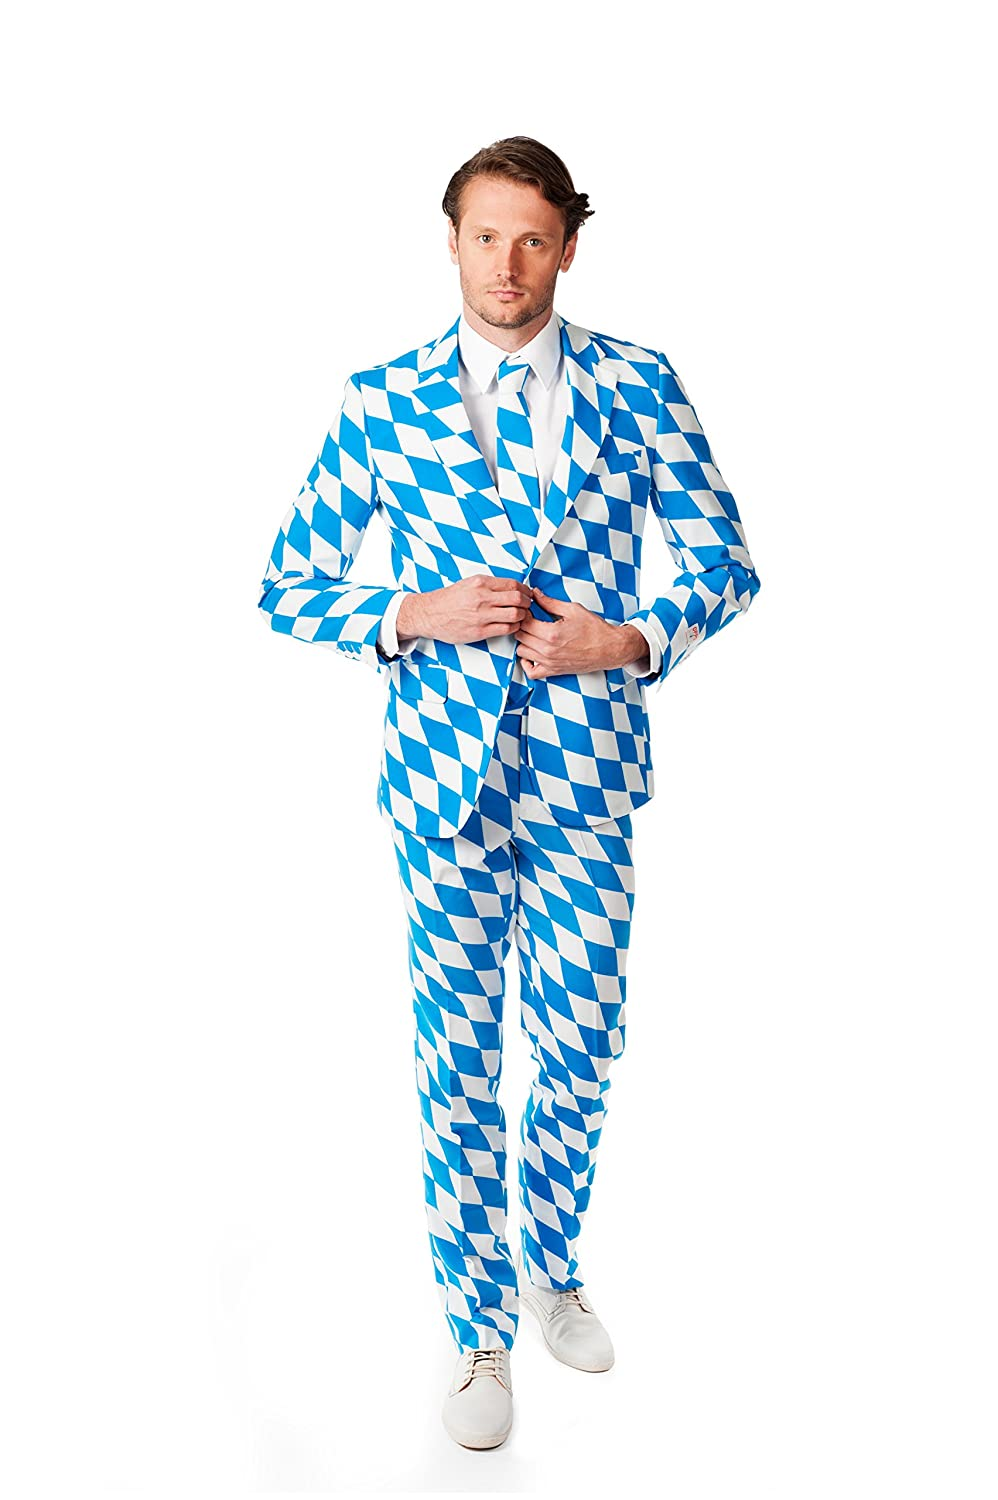 Amazon.com: Opposuits Mens The Bavarian - Crazy Suit, 38: Clothing